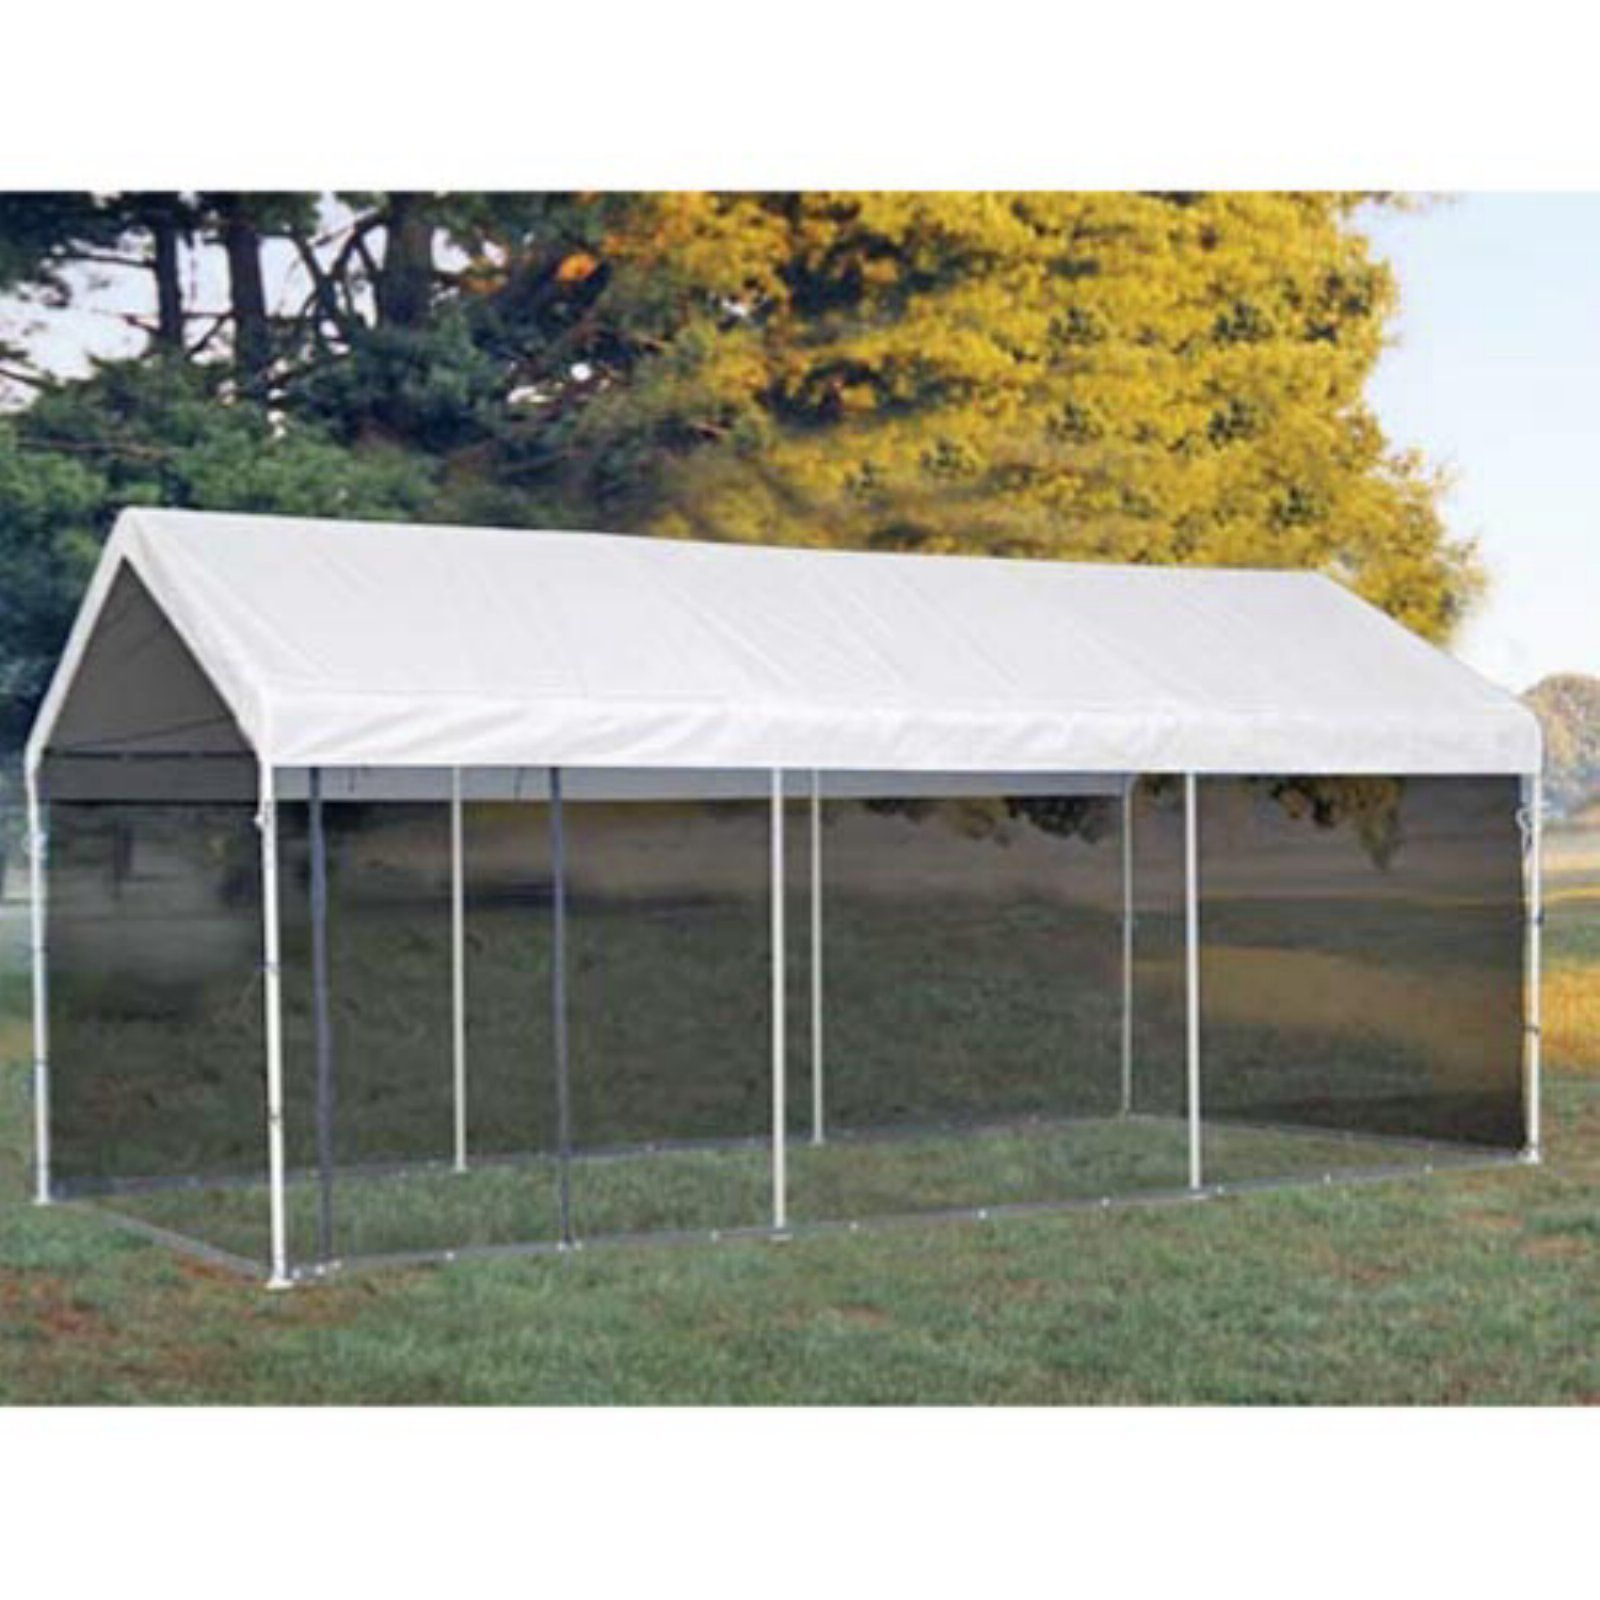 ShelterLogic 10 x 20 ft. AllPurpose Canopy with Screen